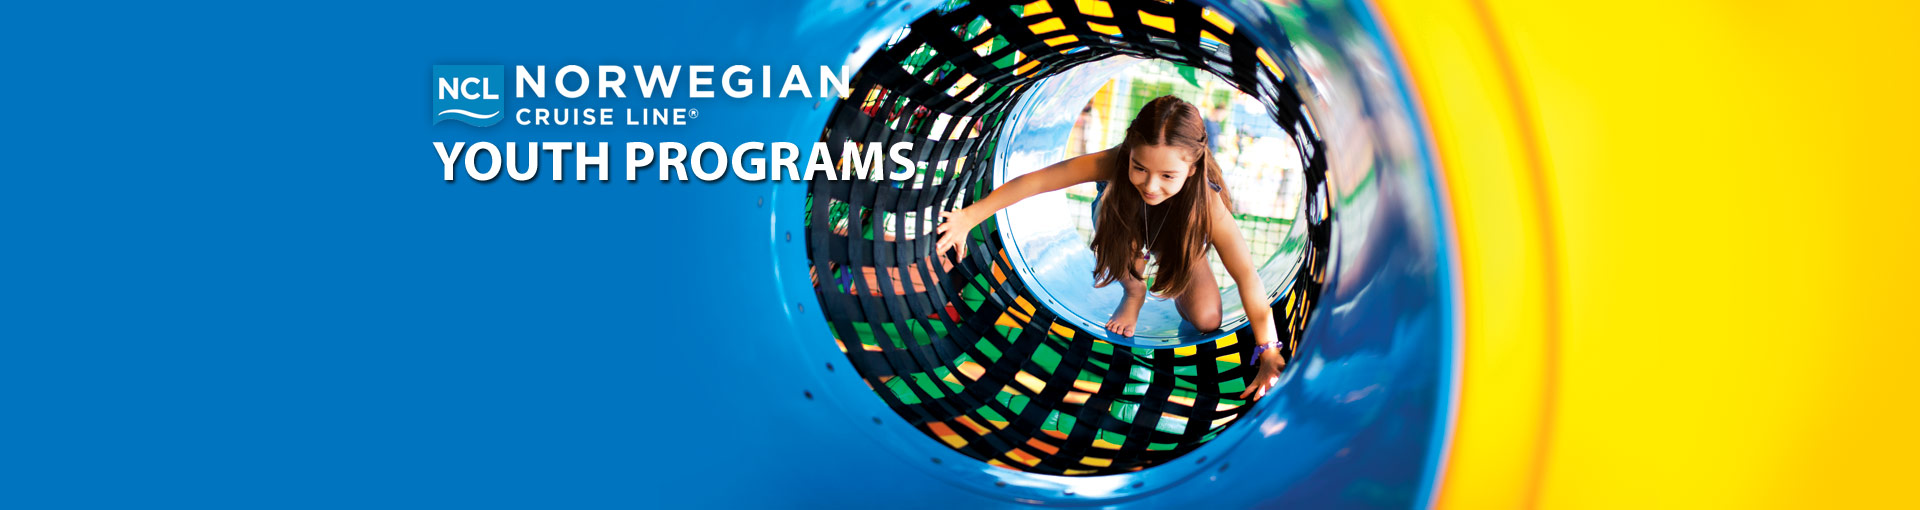 Norwegian Cruise Line Youth Programs